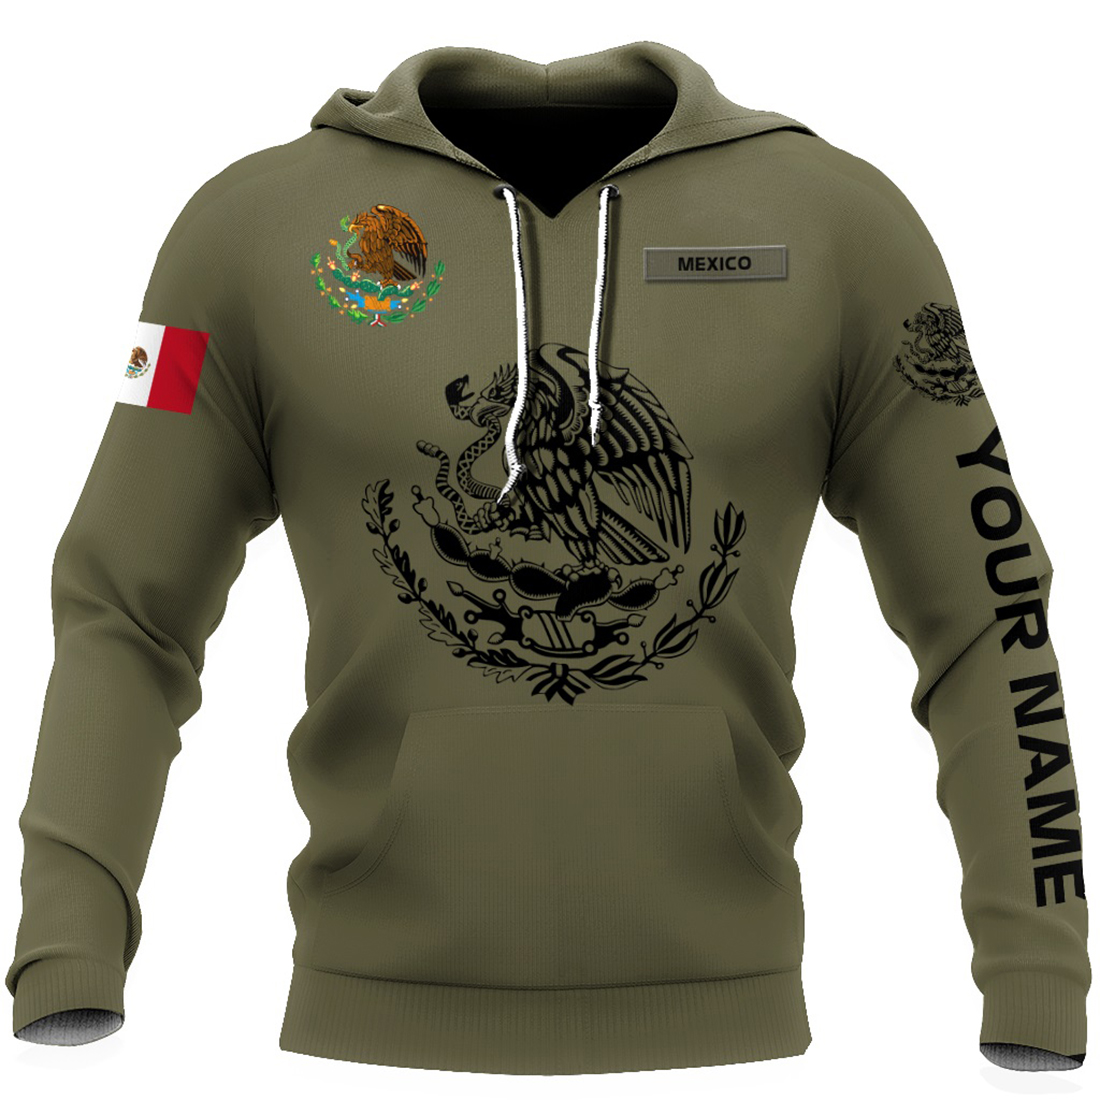 Personalized Mexican 3d all over printed hoodie and zip hoodie